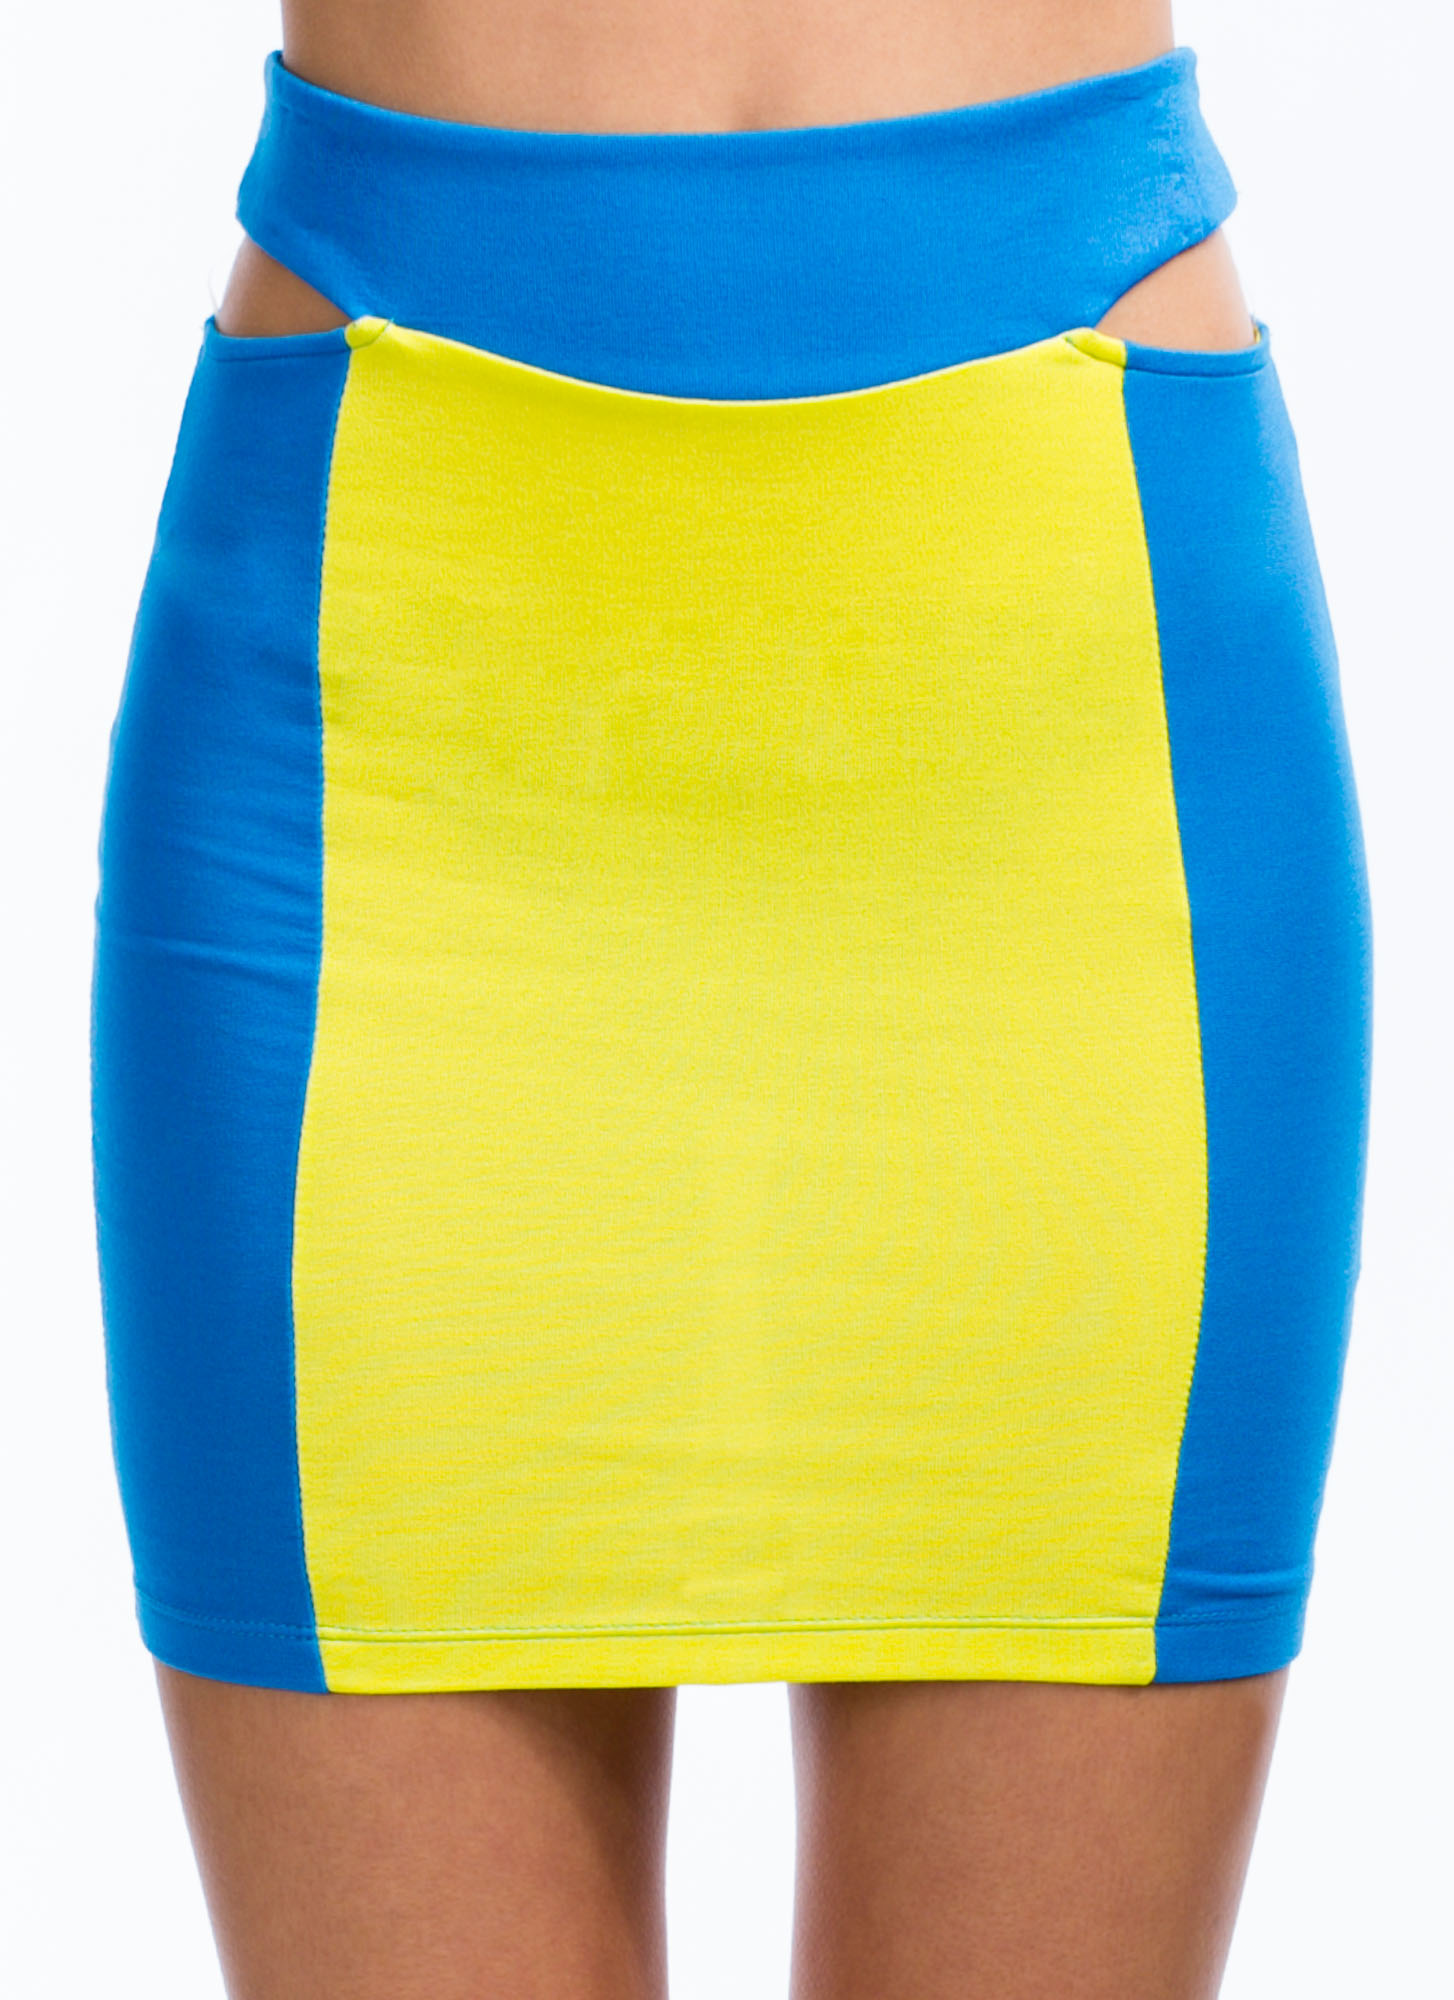 Colorblock Talk Cut-Out Mini Skirt BLUEYELLOW